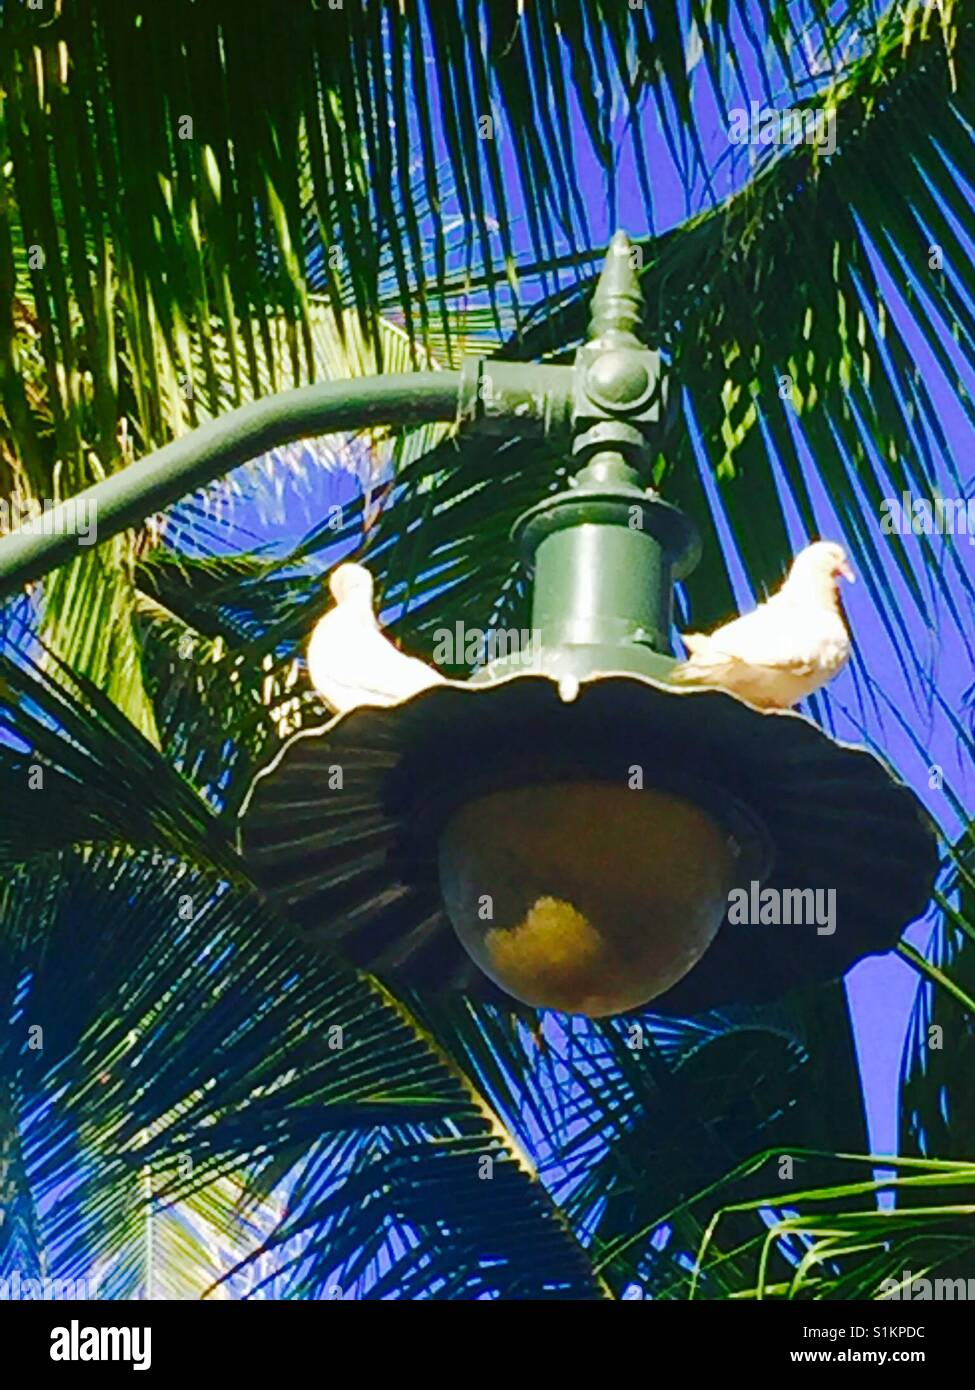 Two birds sitting atop a lamppost with palm fronds in the background - Stock Image